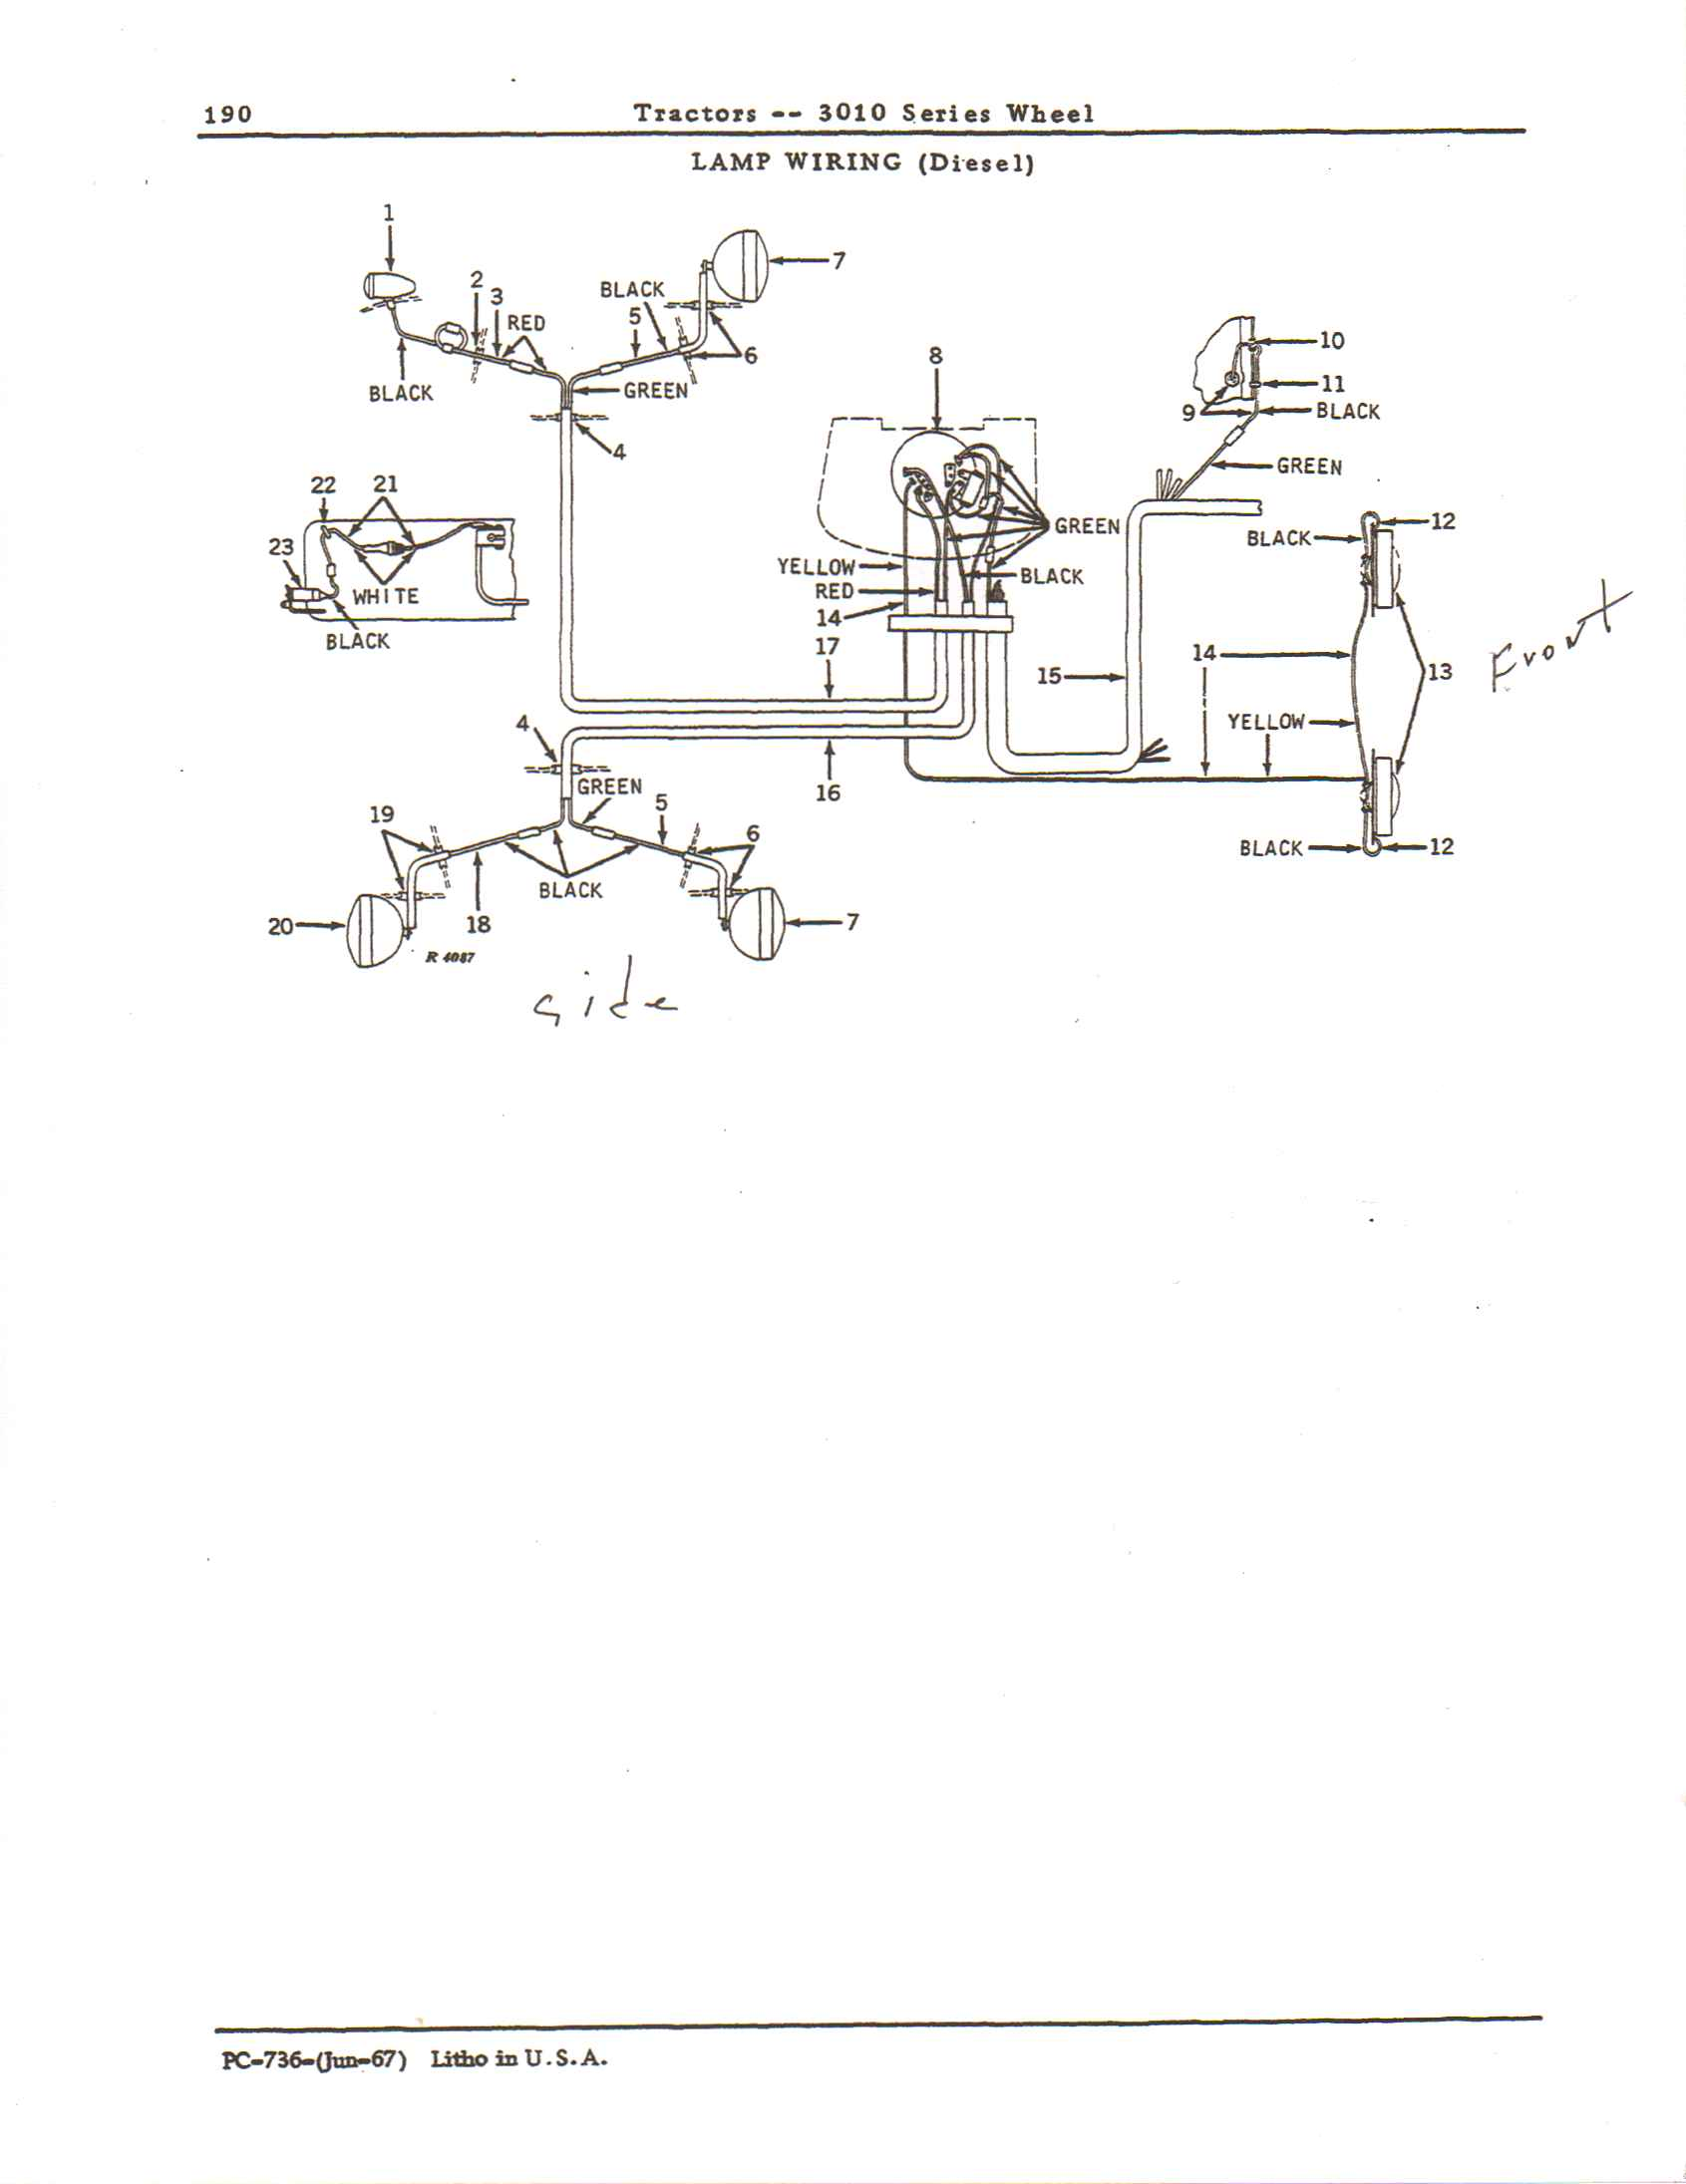 know how to rewire the lights i a wiring diagram to help me welcome to just answer heavy equipment years of experience i look forward to doing my best to help